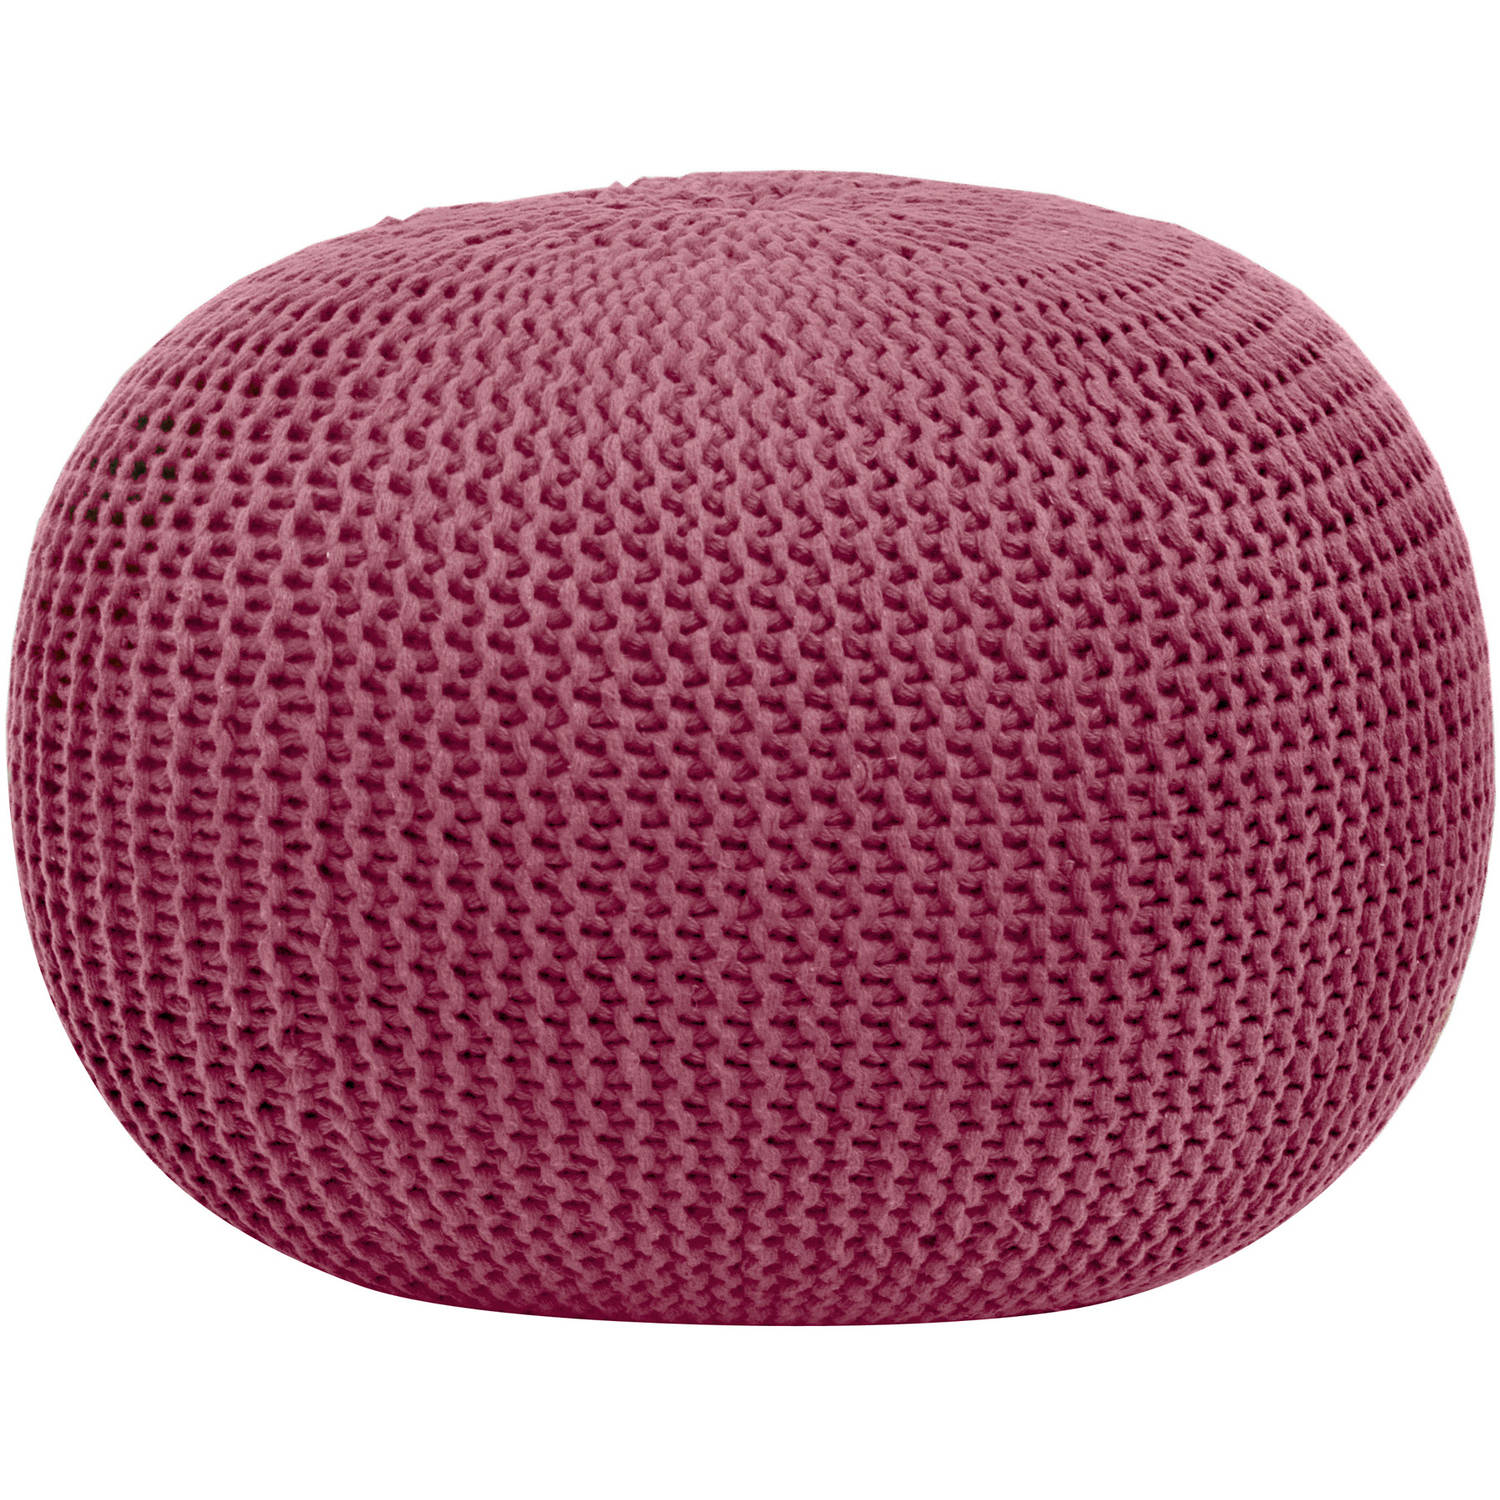 Urban Shop Round Knit Pouf Stool Poof Floor Cover Decor